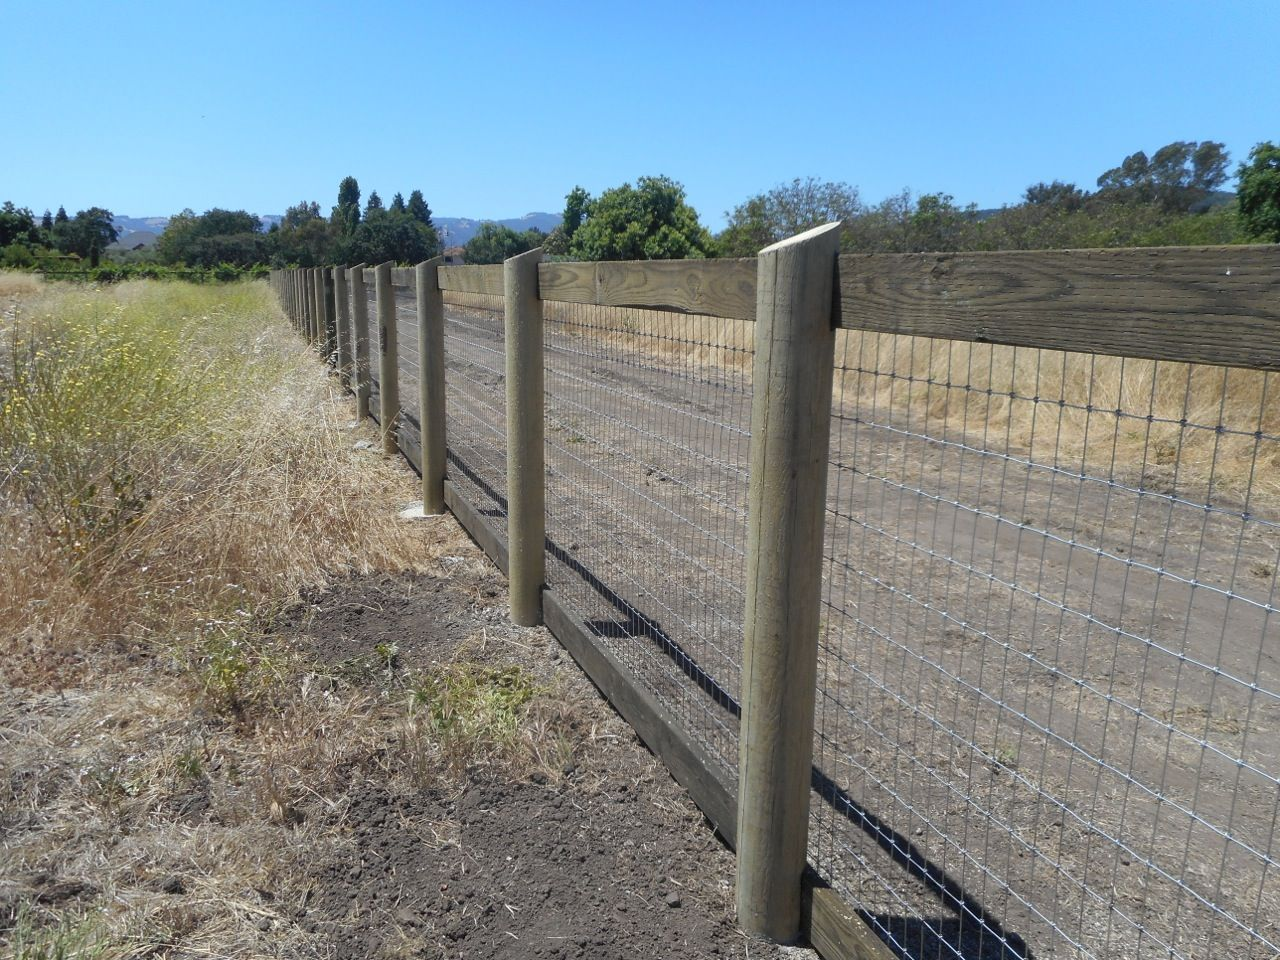 Pin by Rural Urbanite on Fences   Pinterest   Fences, Outdoor ...